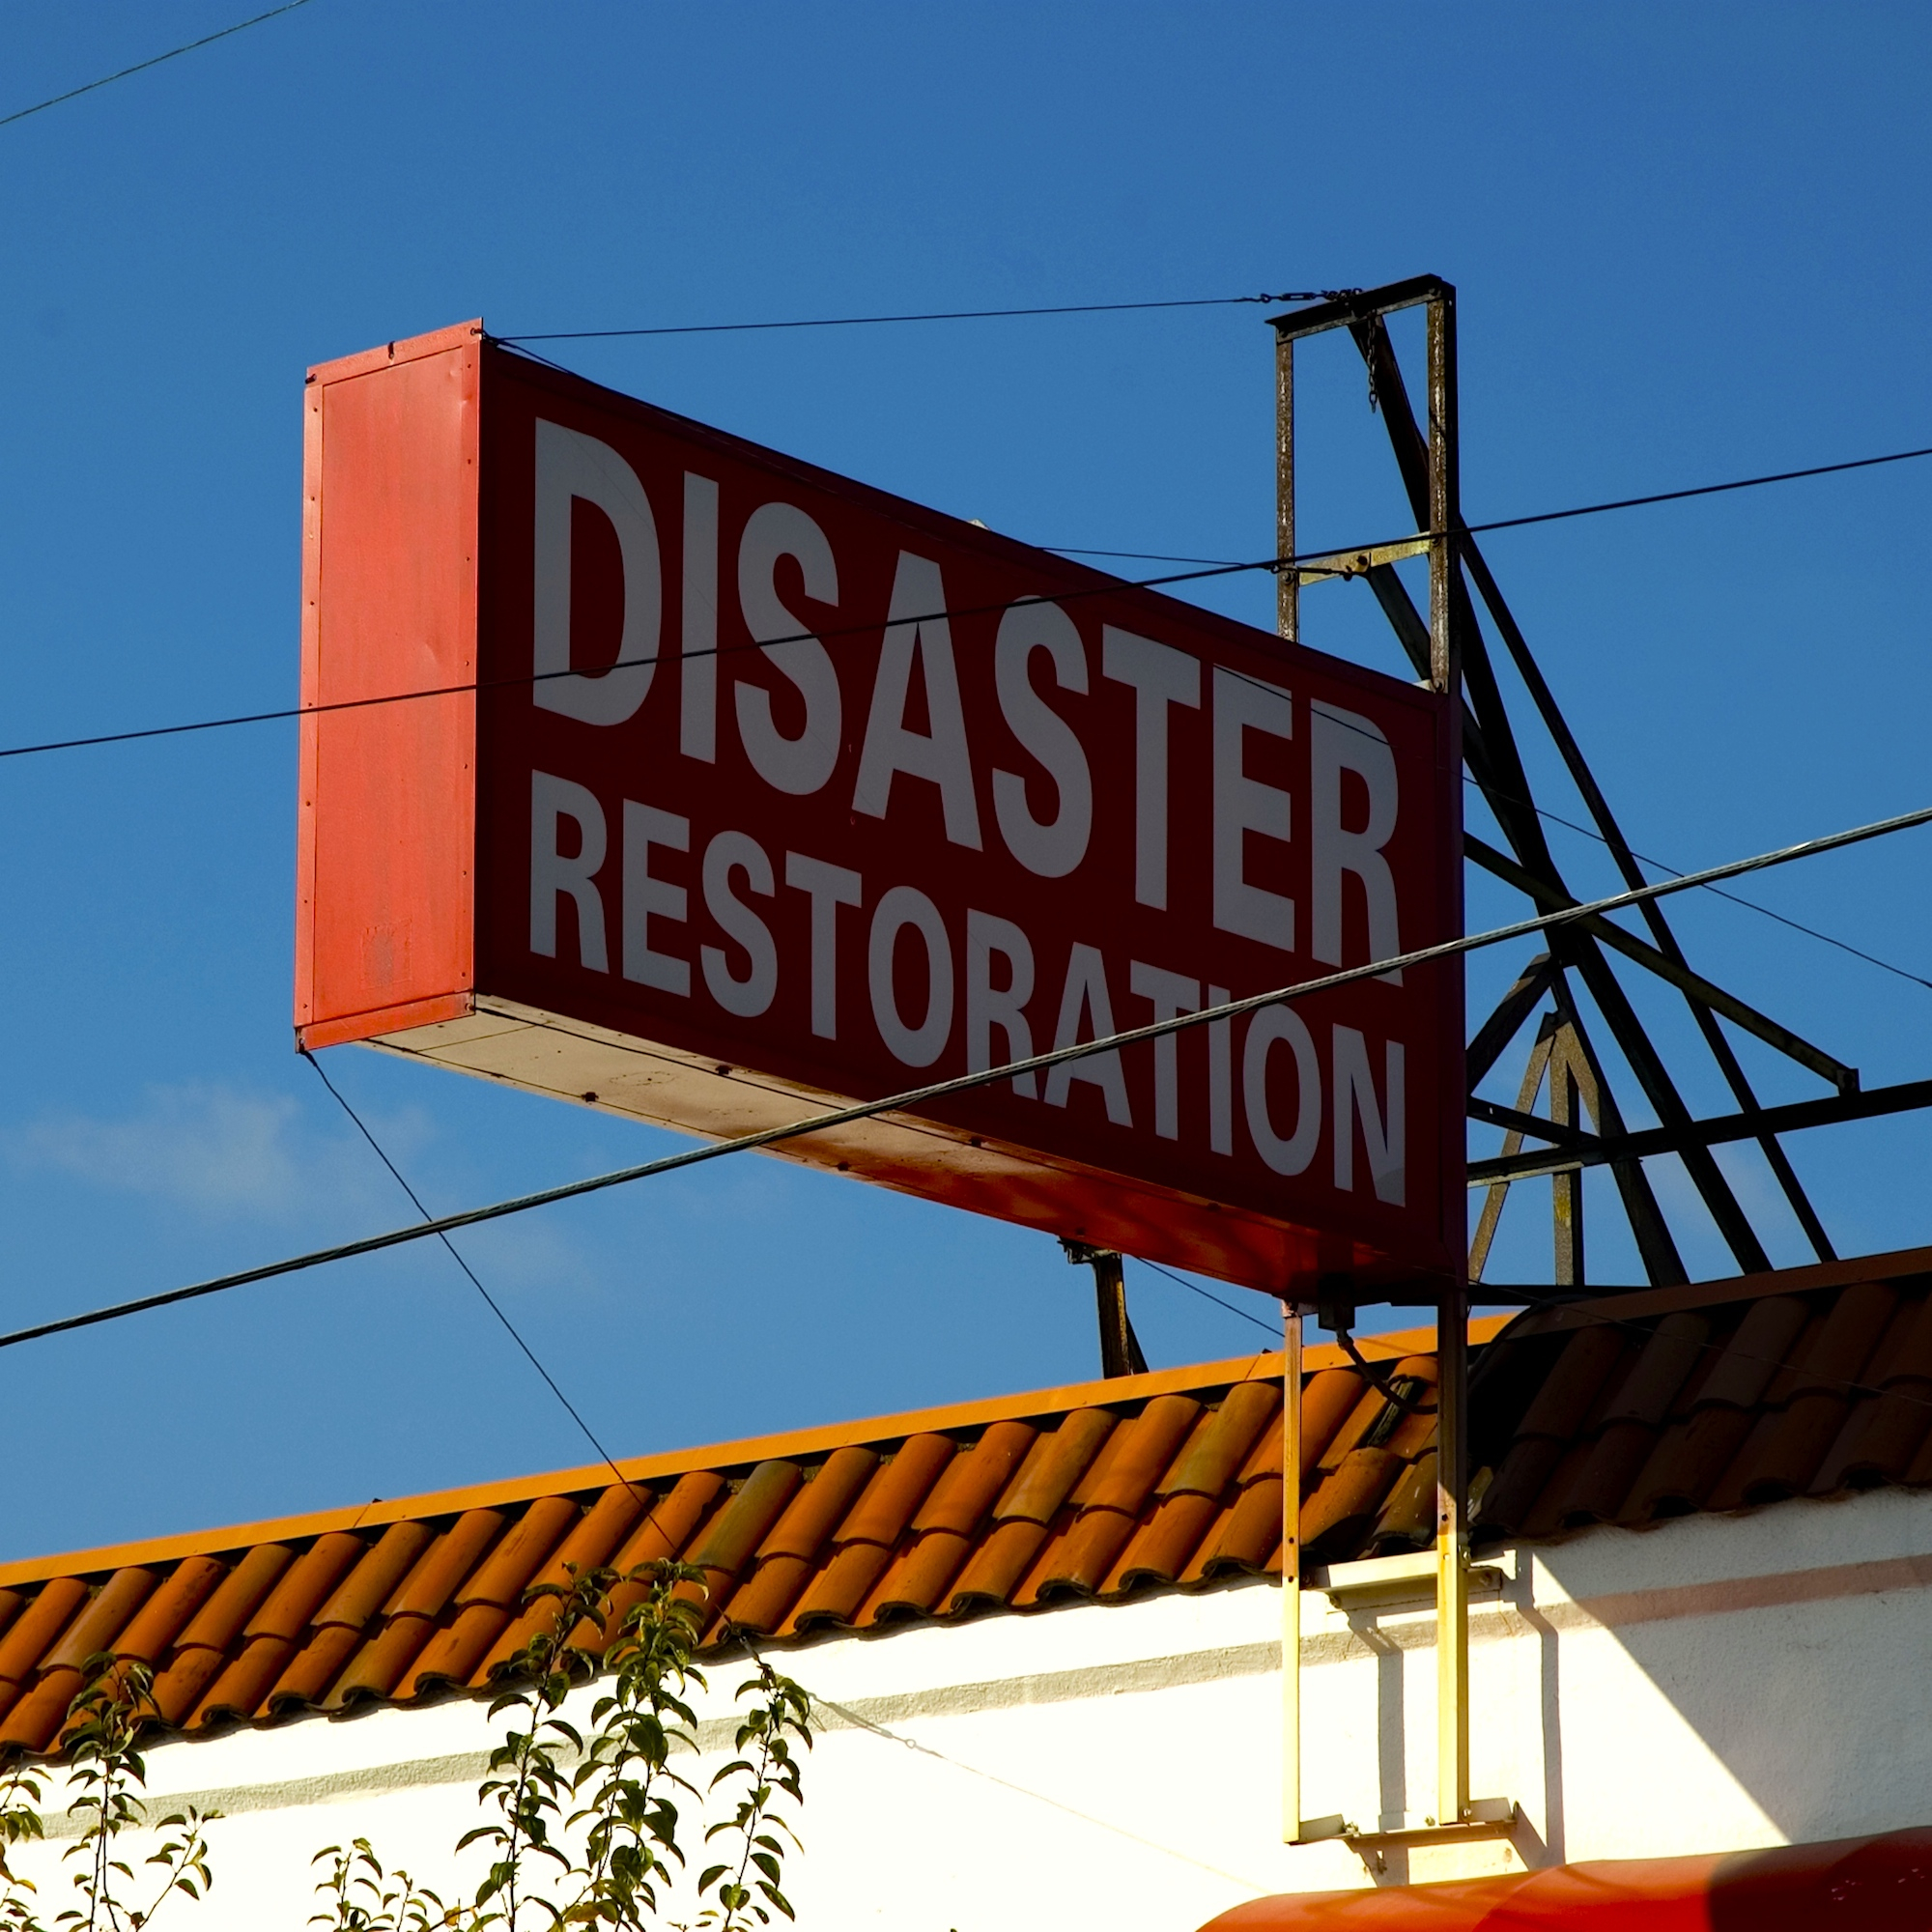 Disaster Restoration